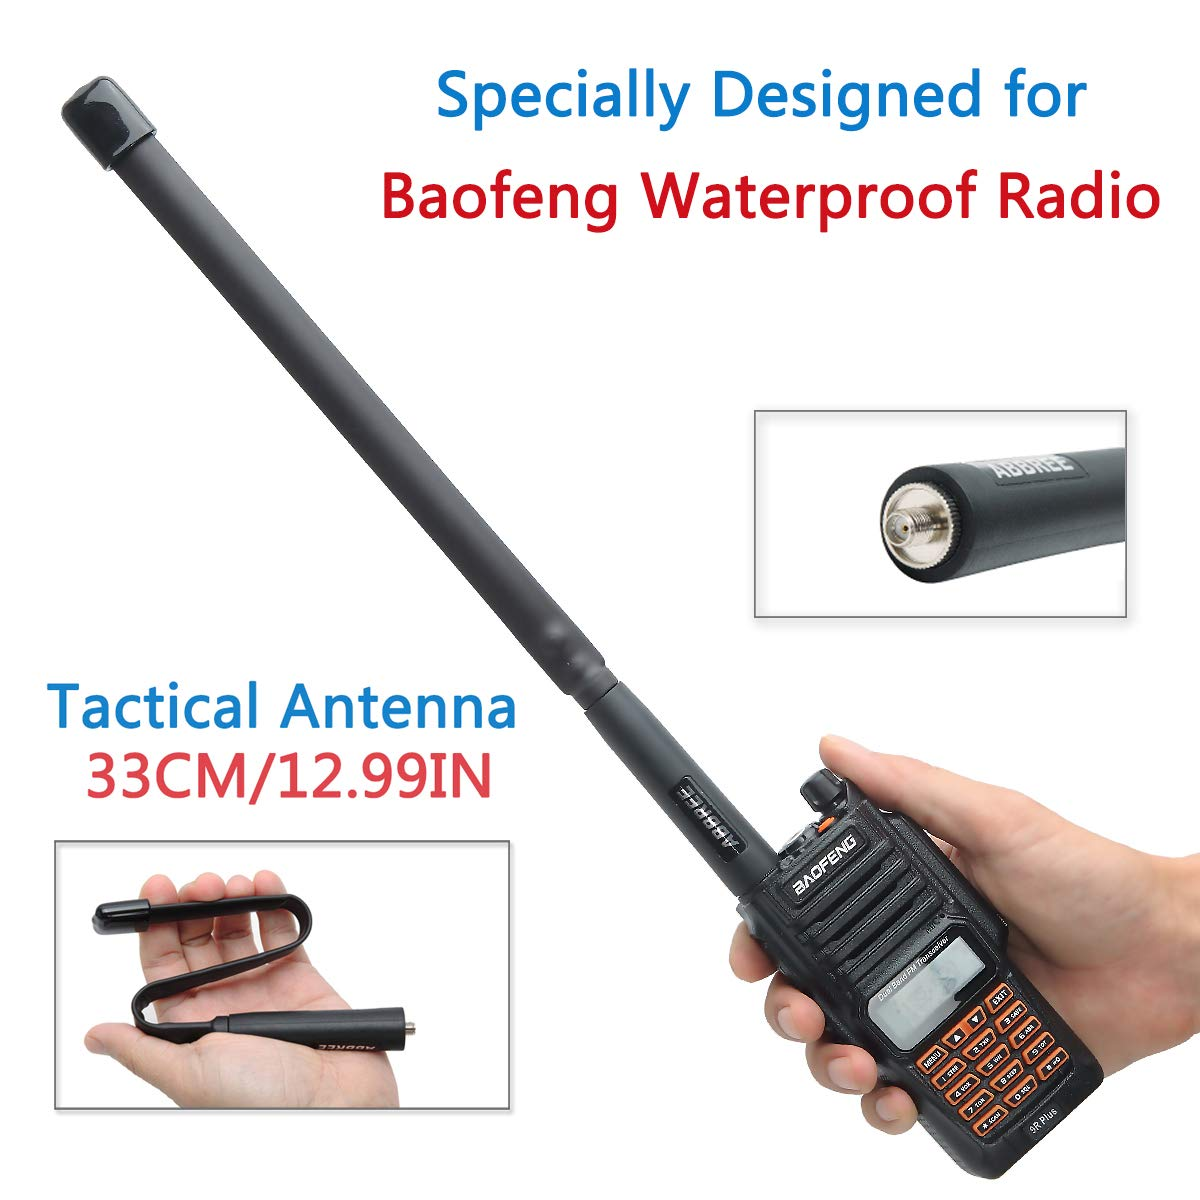 ABBREE Army Game Pieghevole Tactical Outdoor Sport Dual Band VHF//UHF 144//430 MHz Antenna per Baofeng UV-XR UV-9R Plus GT-3WP UV-5RWP Impermeabile Radio bidirezionale 28.3in